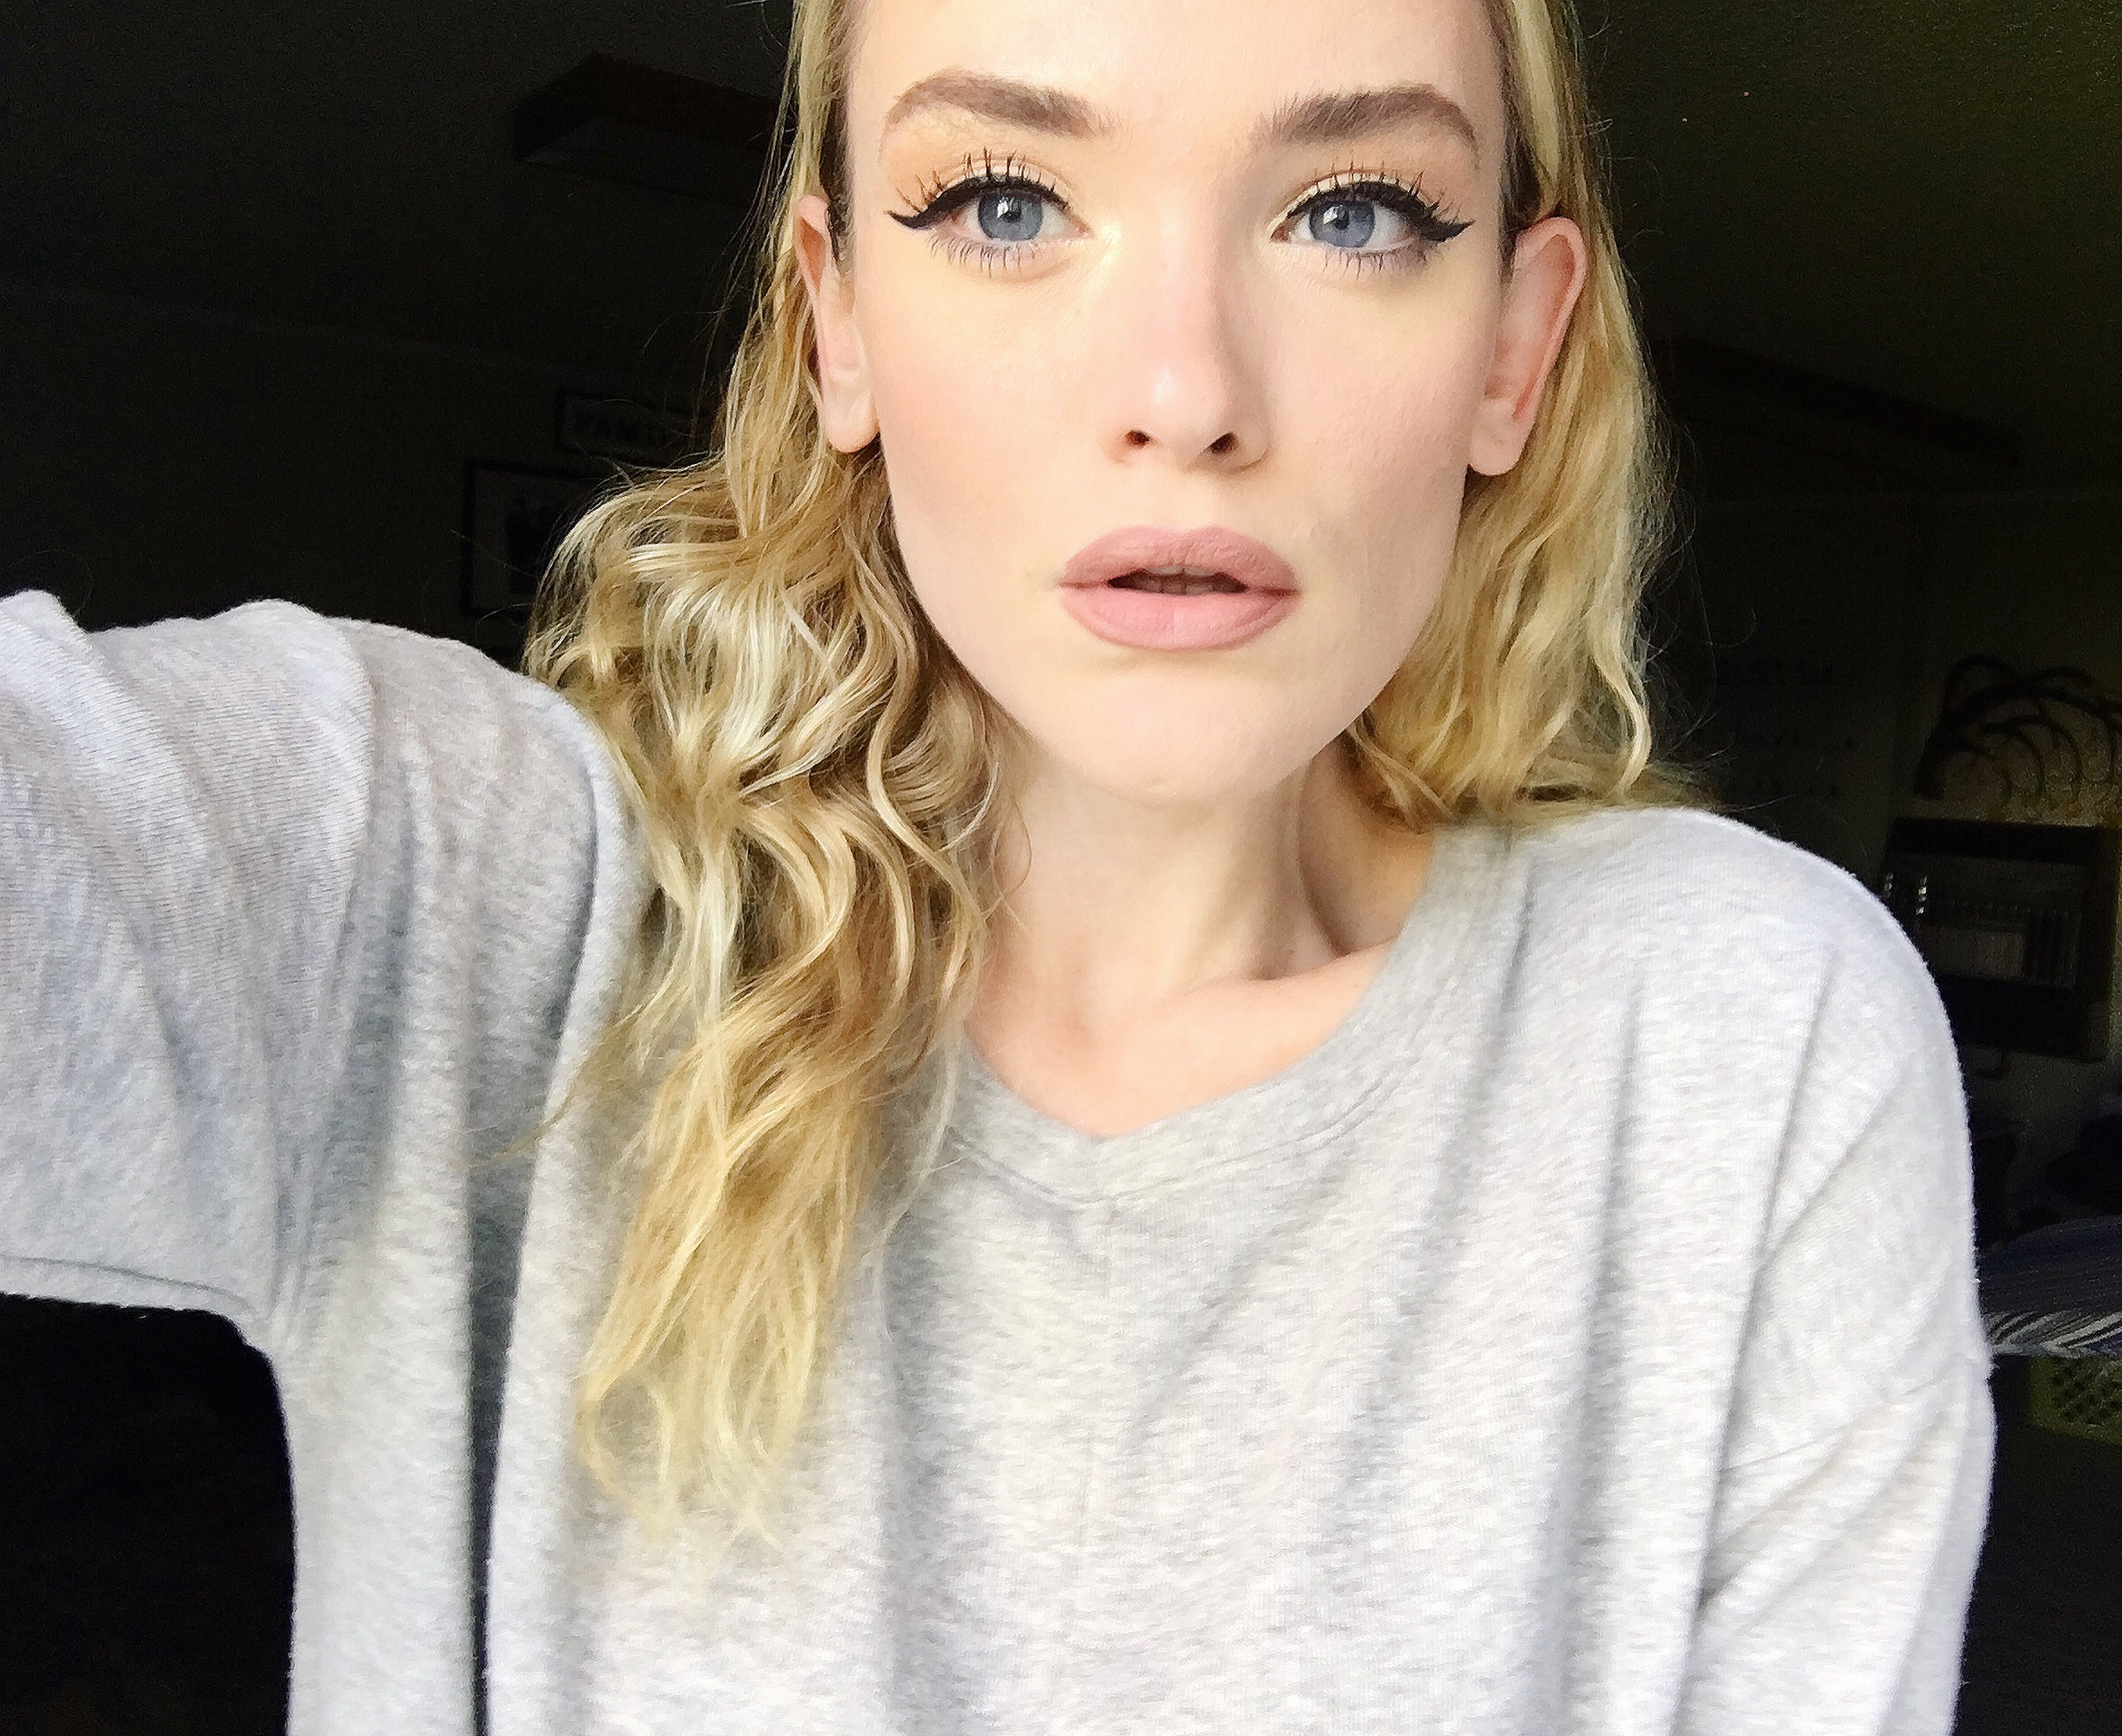 playing with new makeup - day + night looks :)